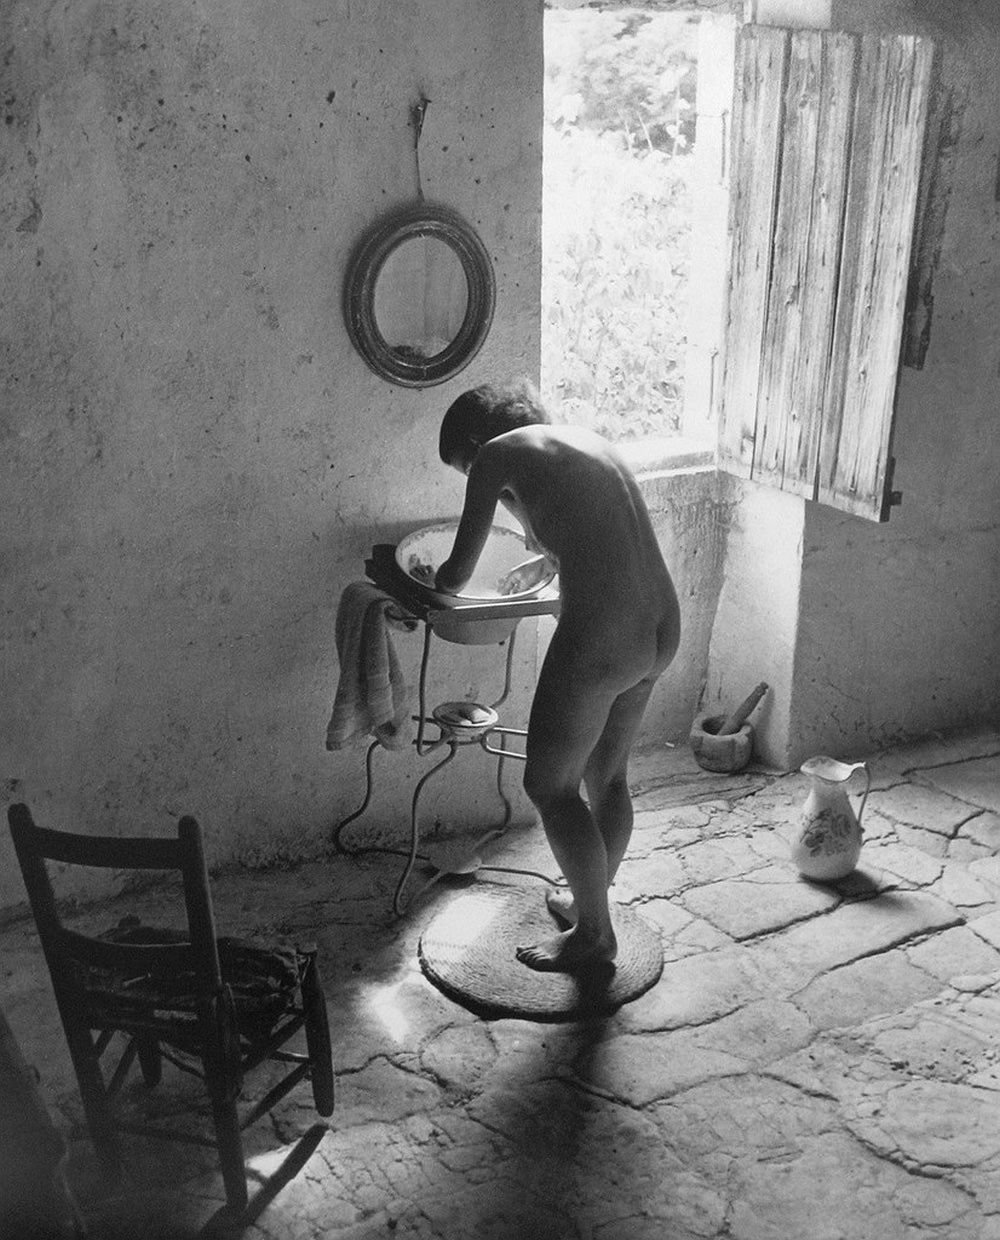 Willy Ronis, Le nu provencal, 1949